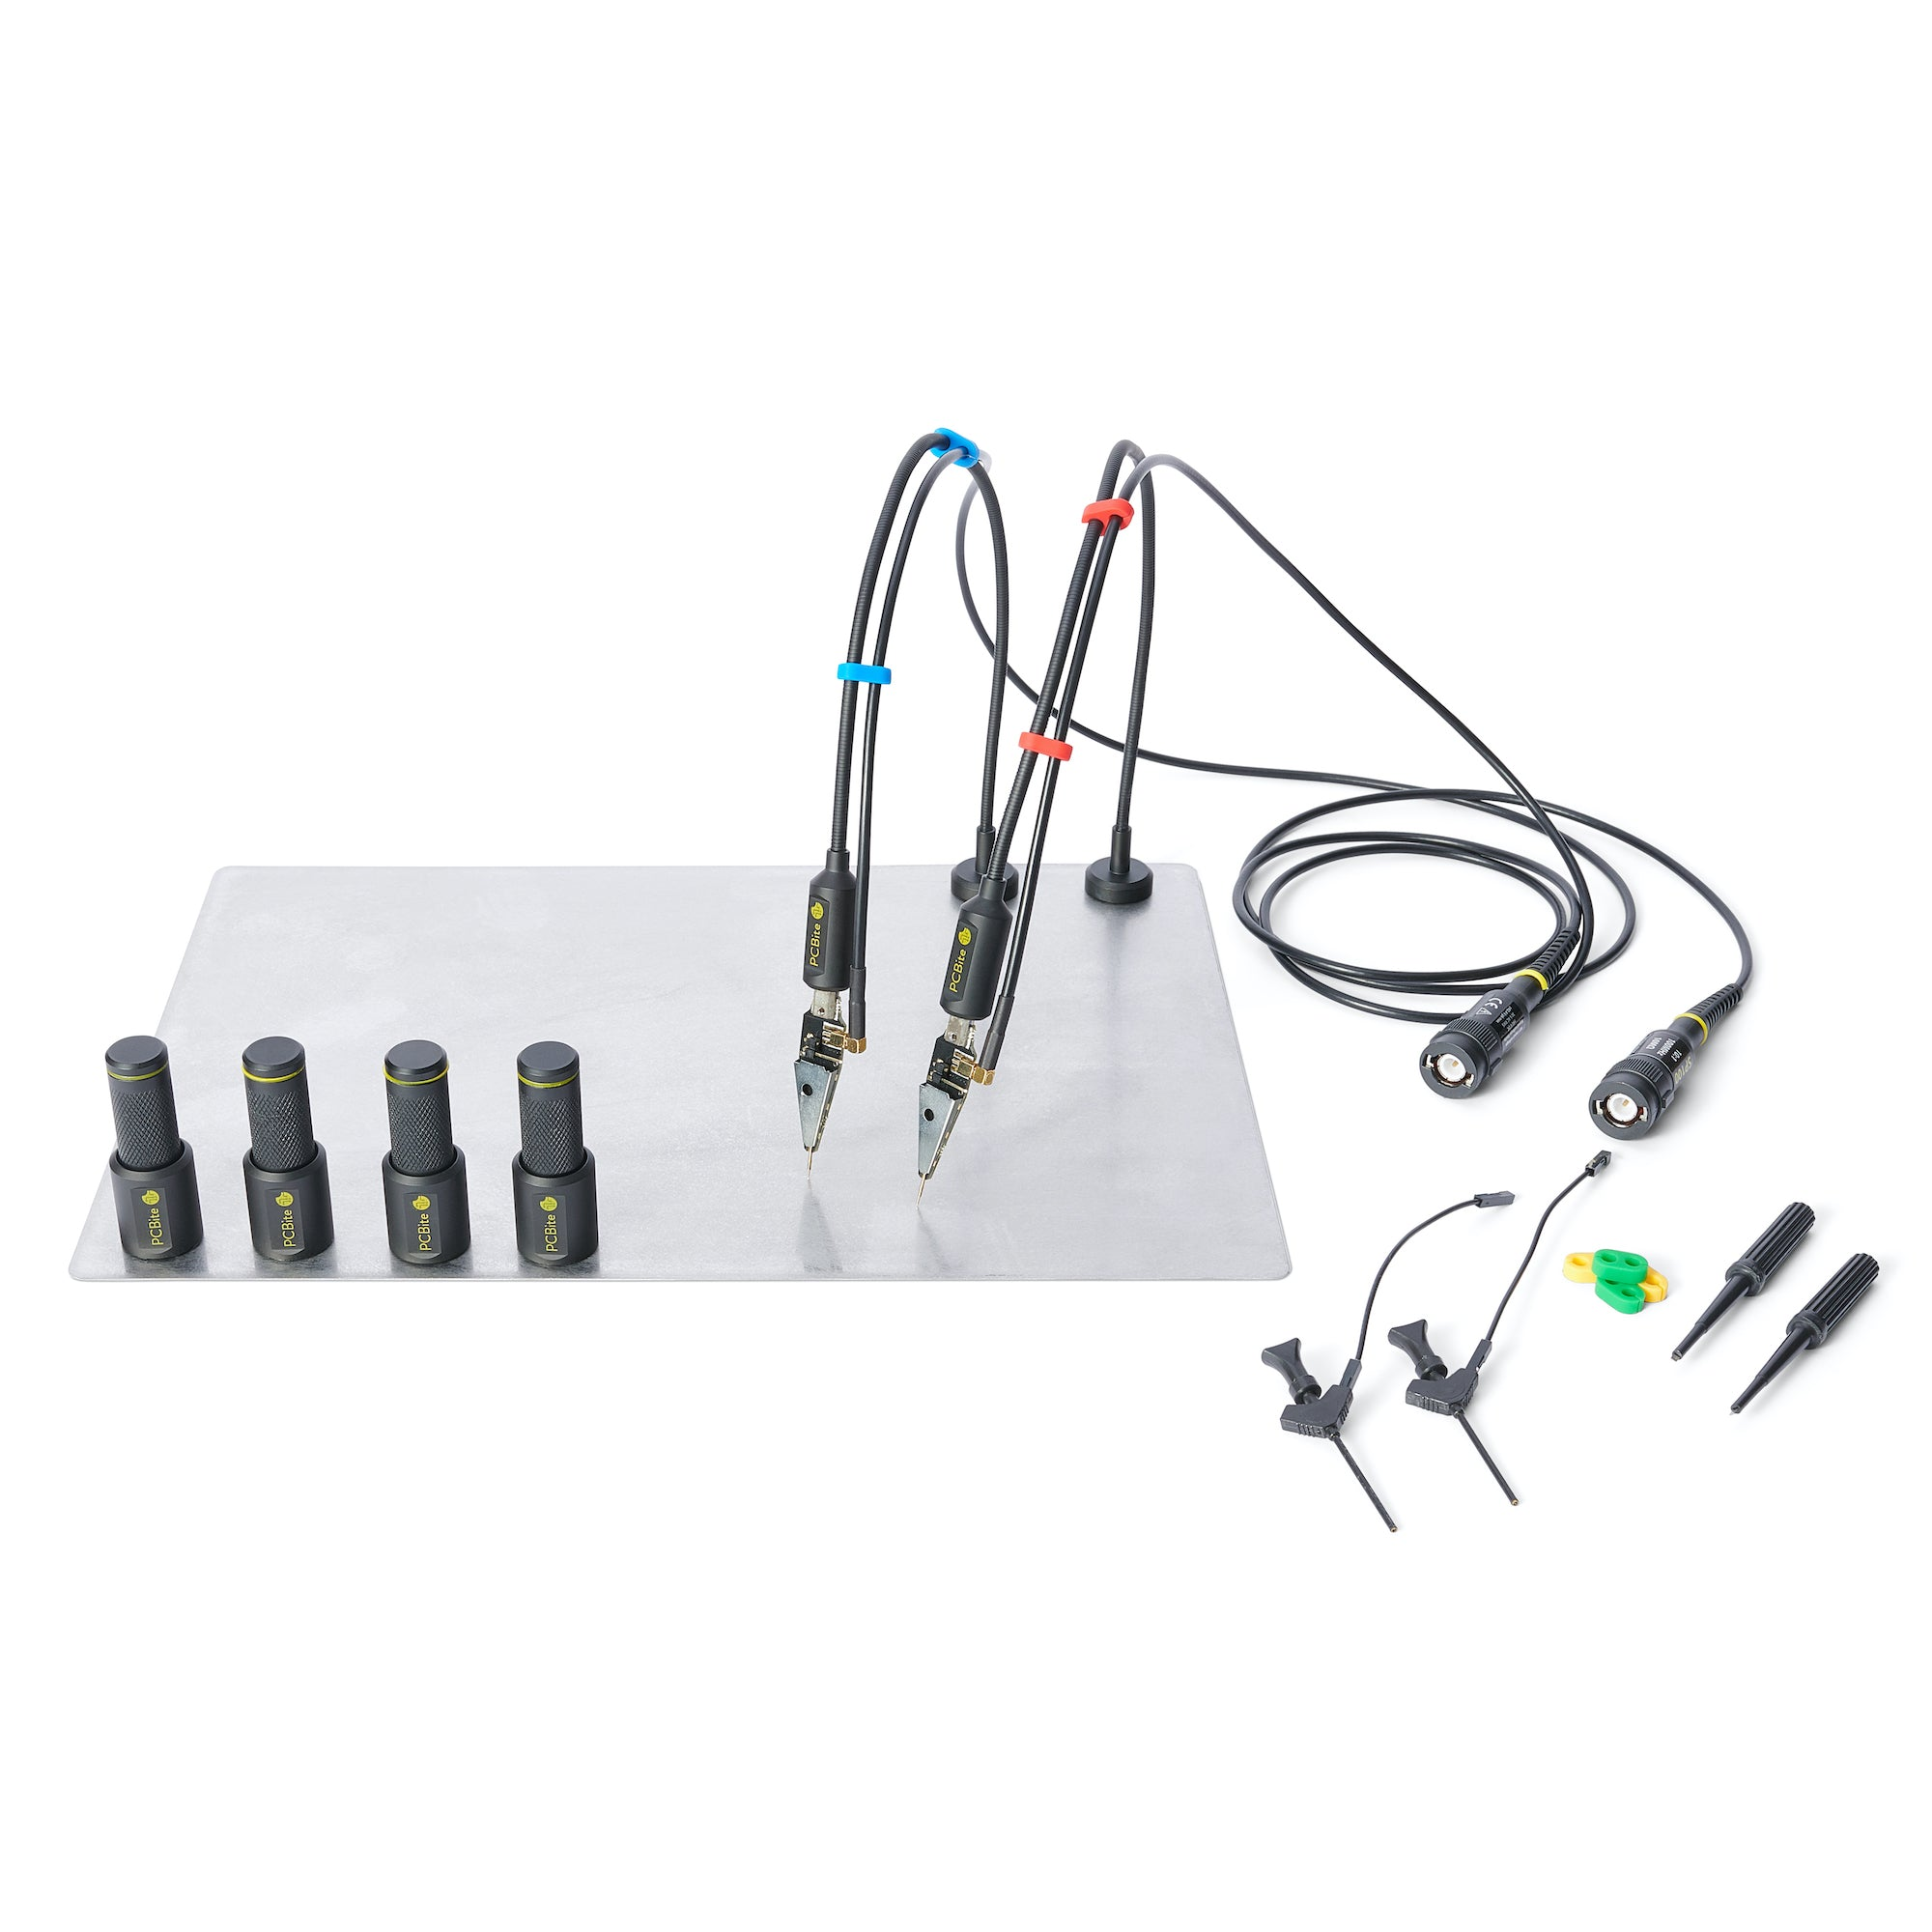 PCBite kit with 2x SP200 200 Mhz handsfree oscilloscope probes